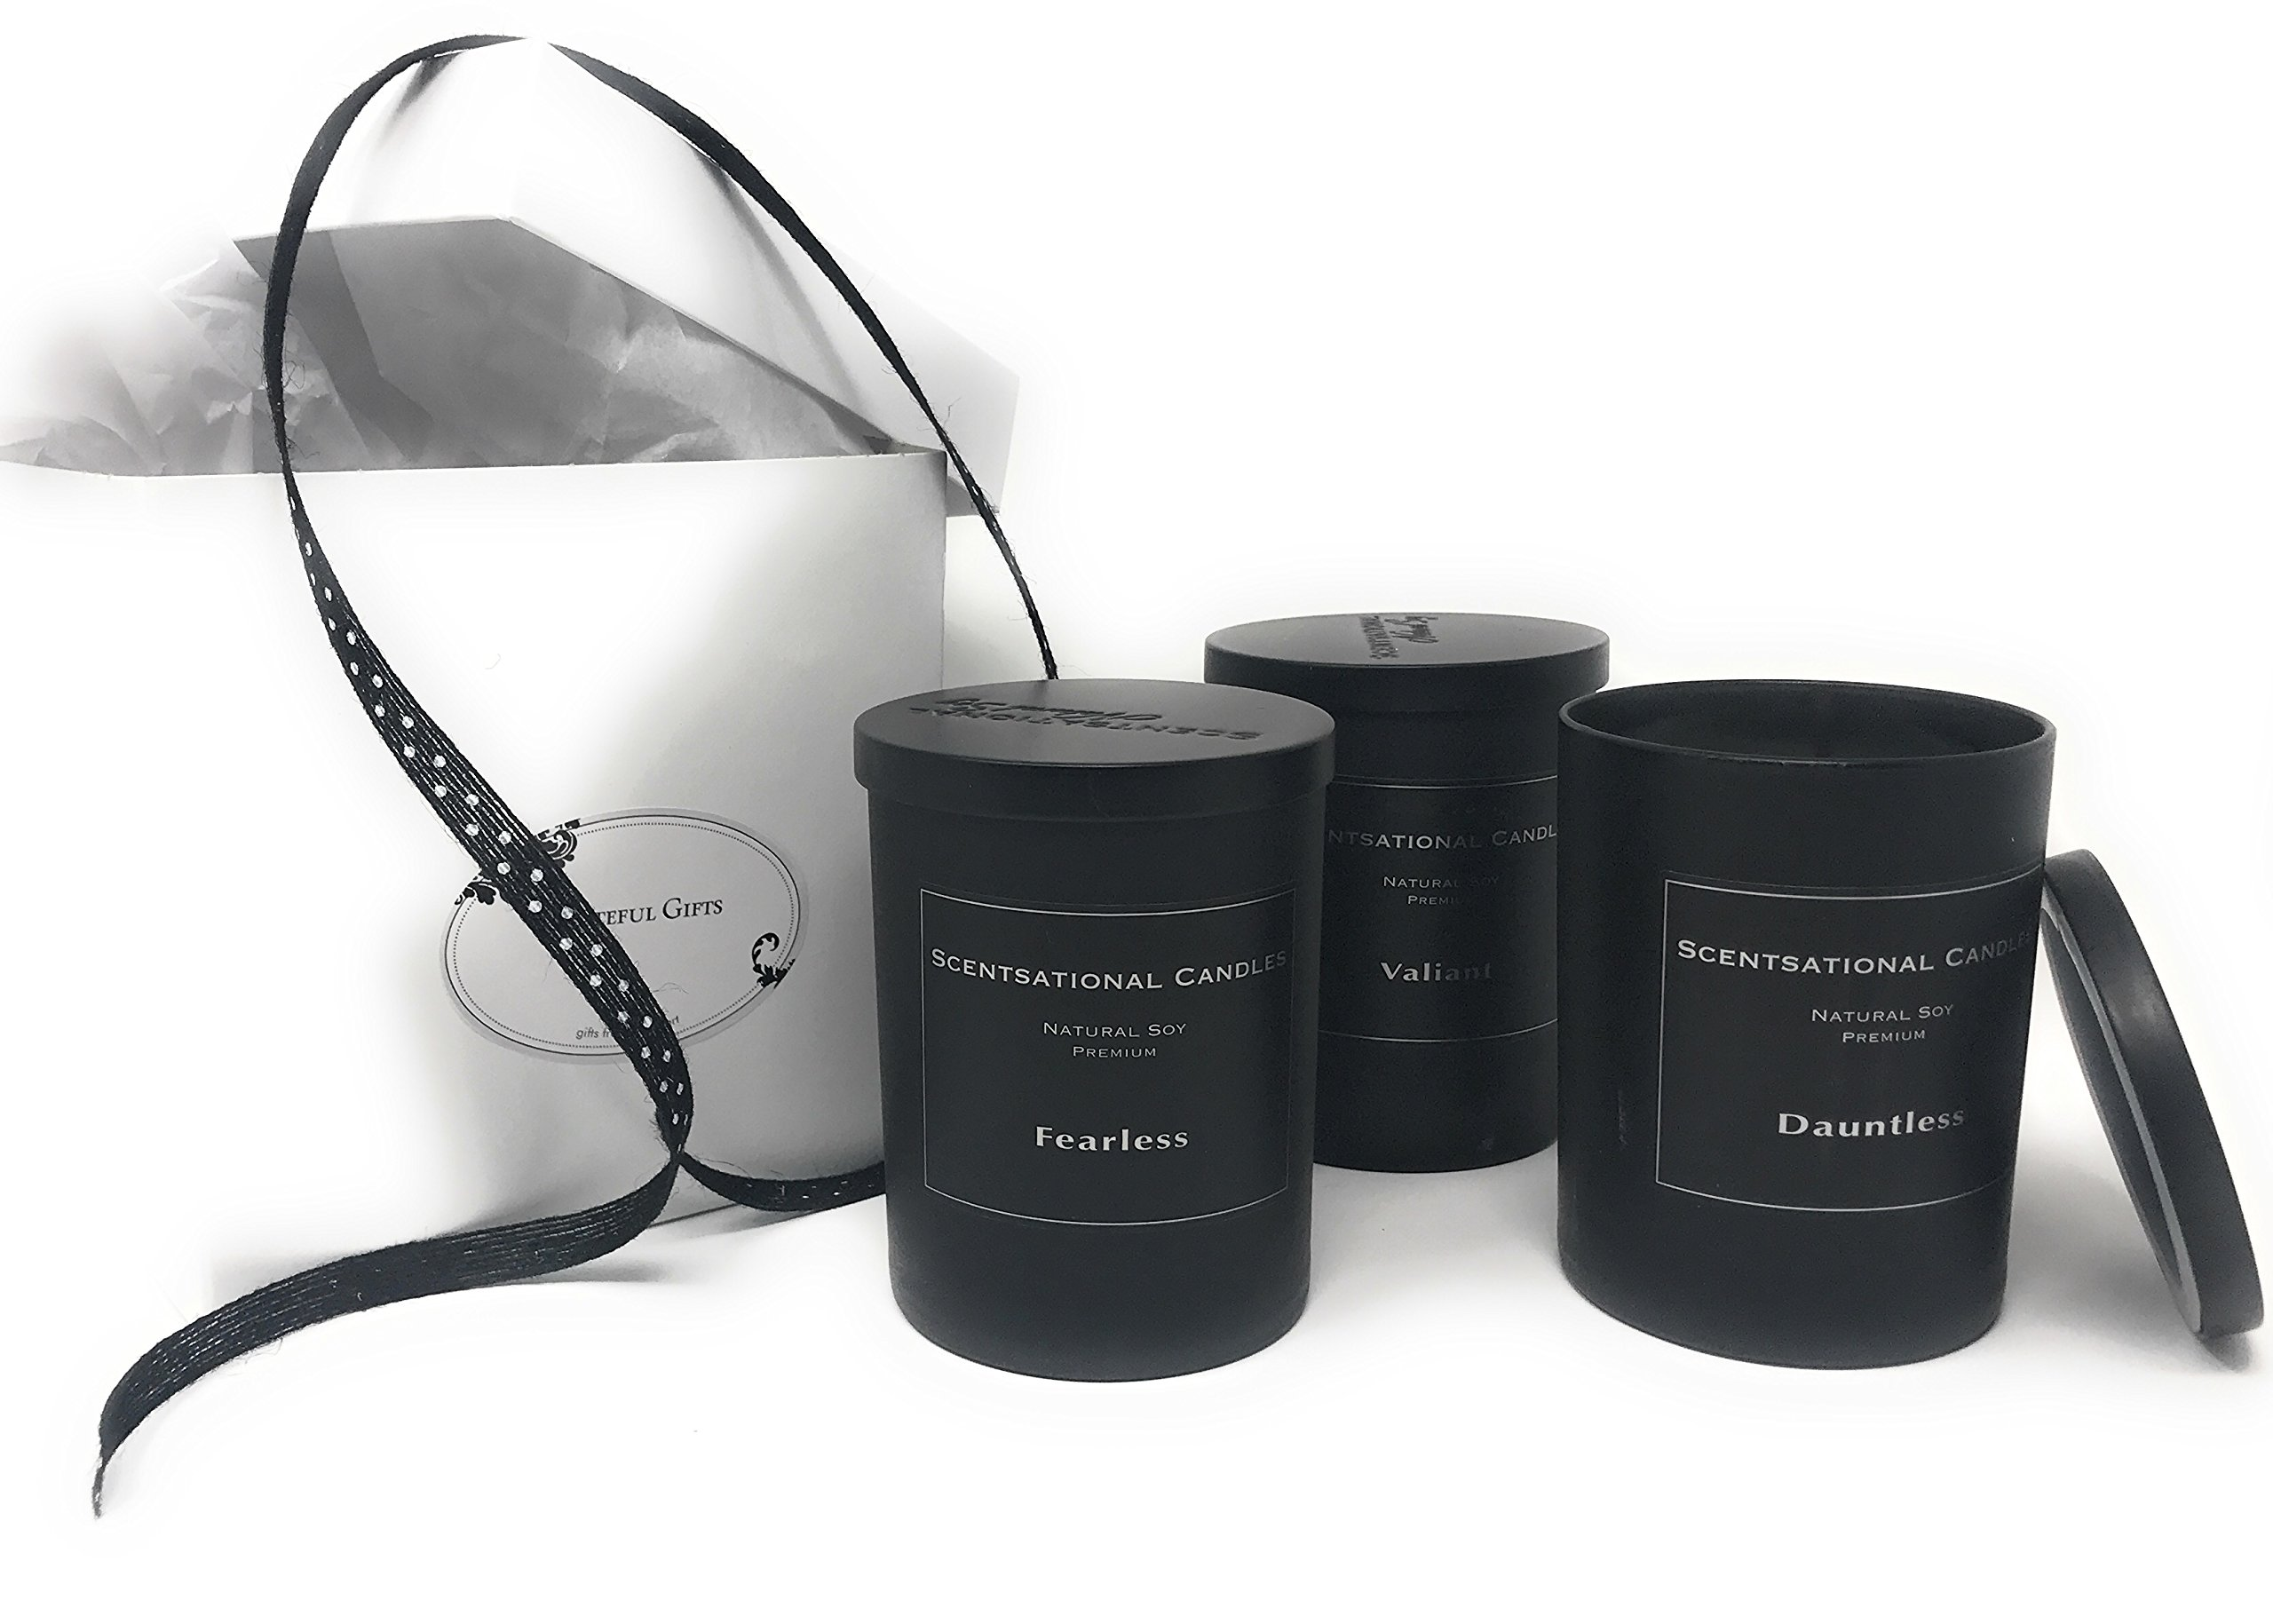 Grateful Gifts Man Candle Gift Set, Ready to Give, Includes 3 of 11oz. Scentsational Candles - Dauntless, Fearless and Valiant, All Masculine Manly Scented Candles